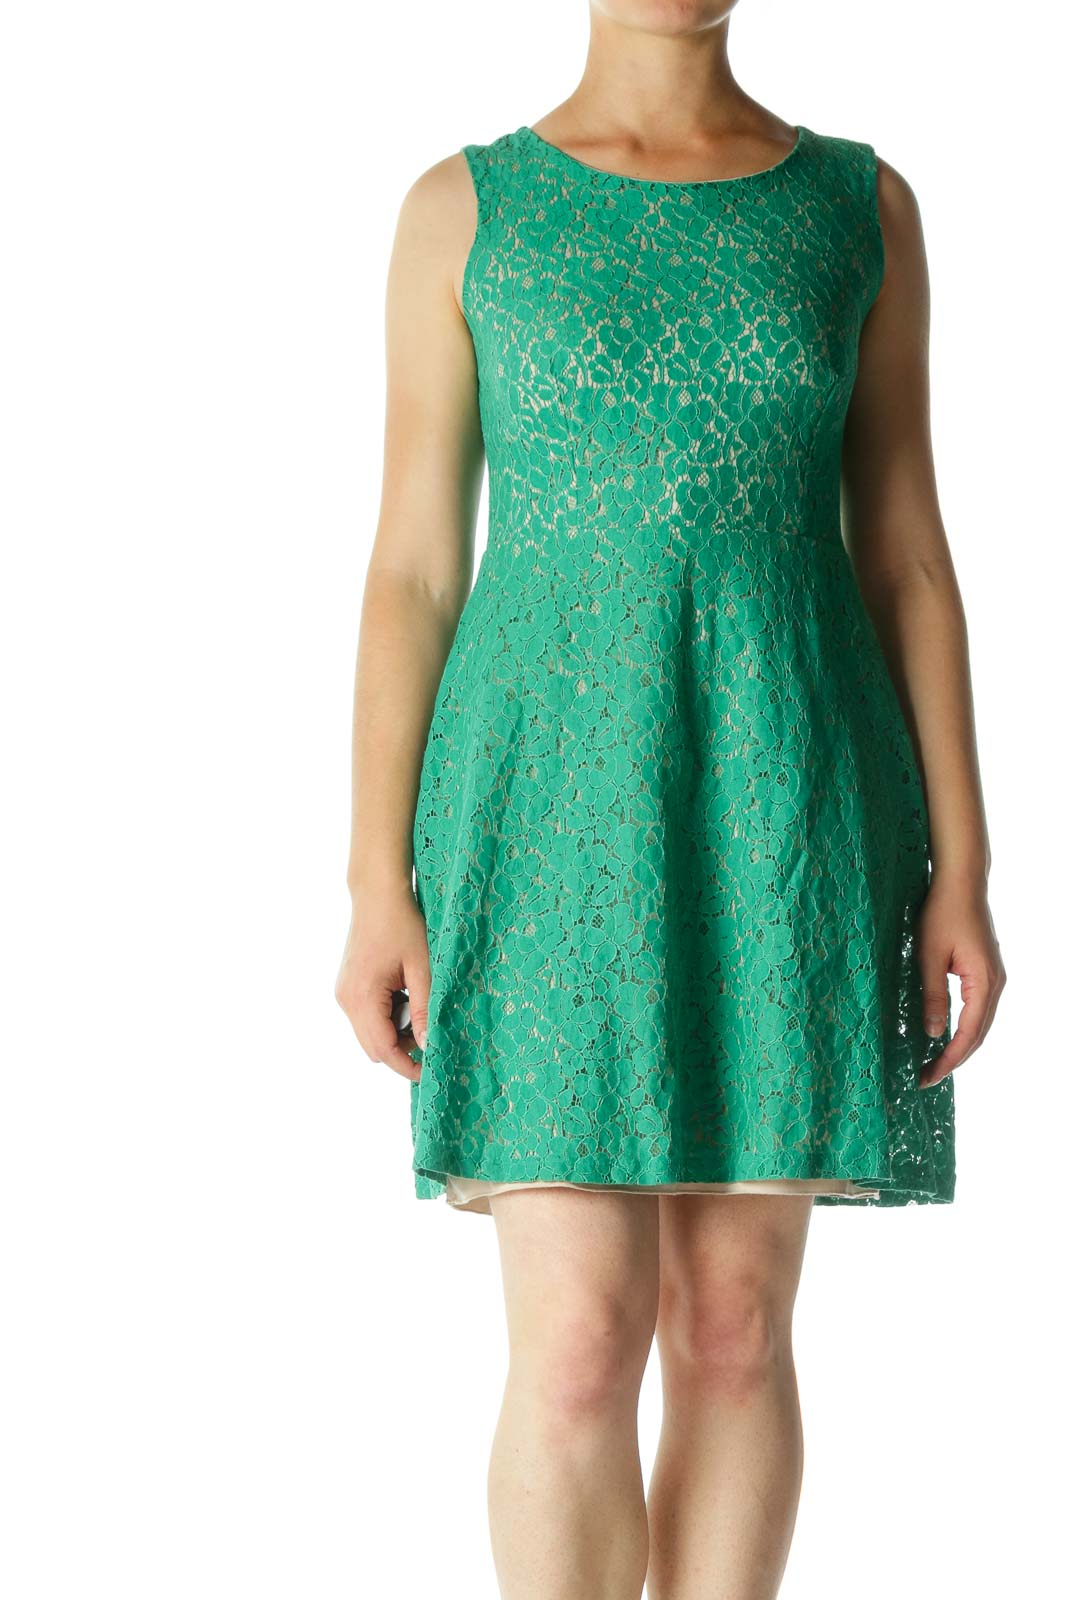 Green Lace Cocktail Dress with Cut-Out Back Front